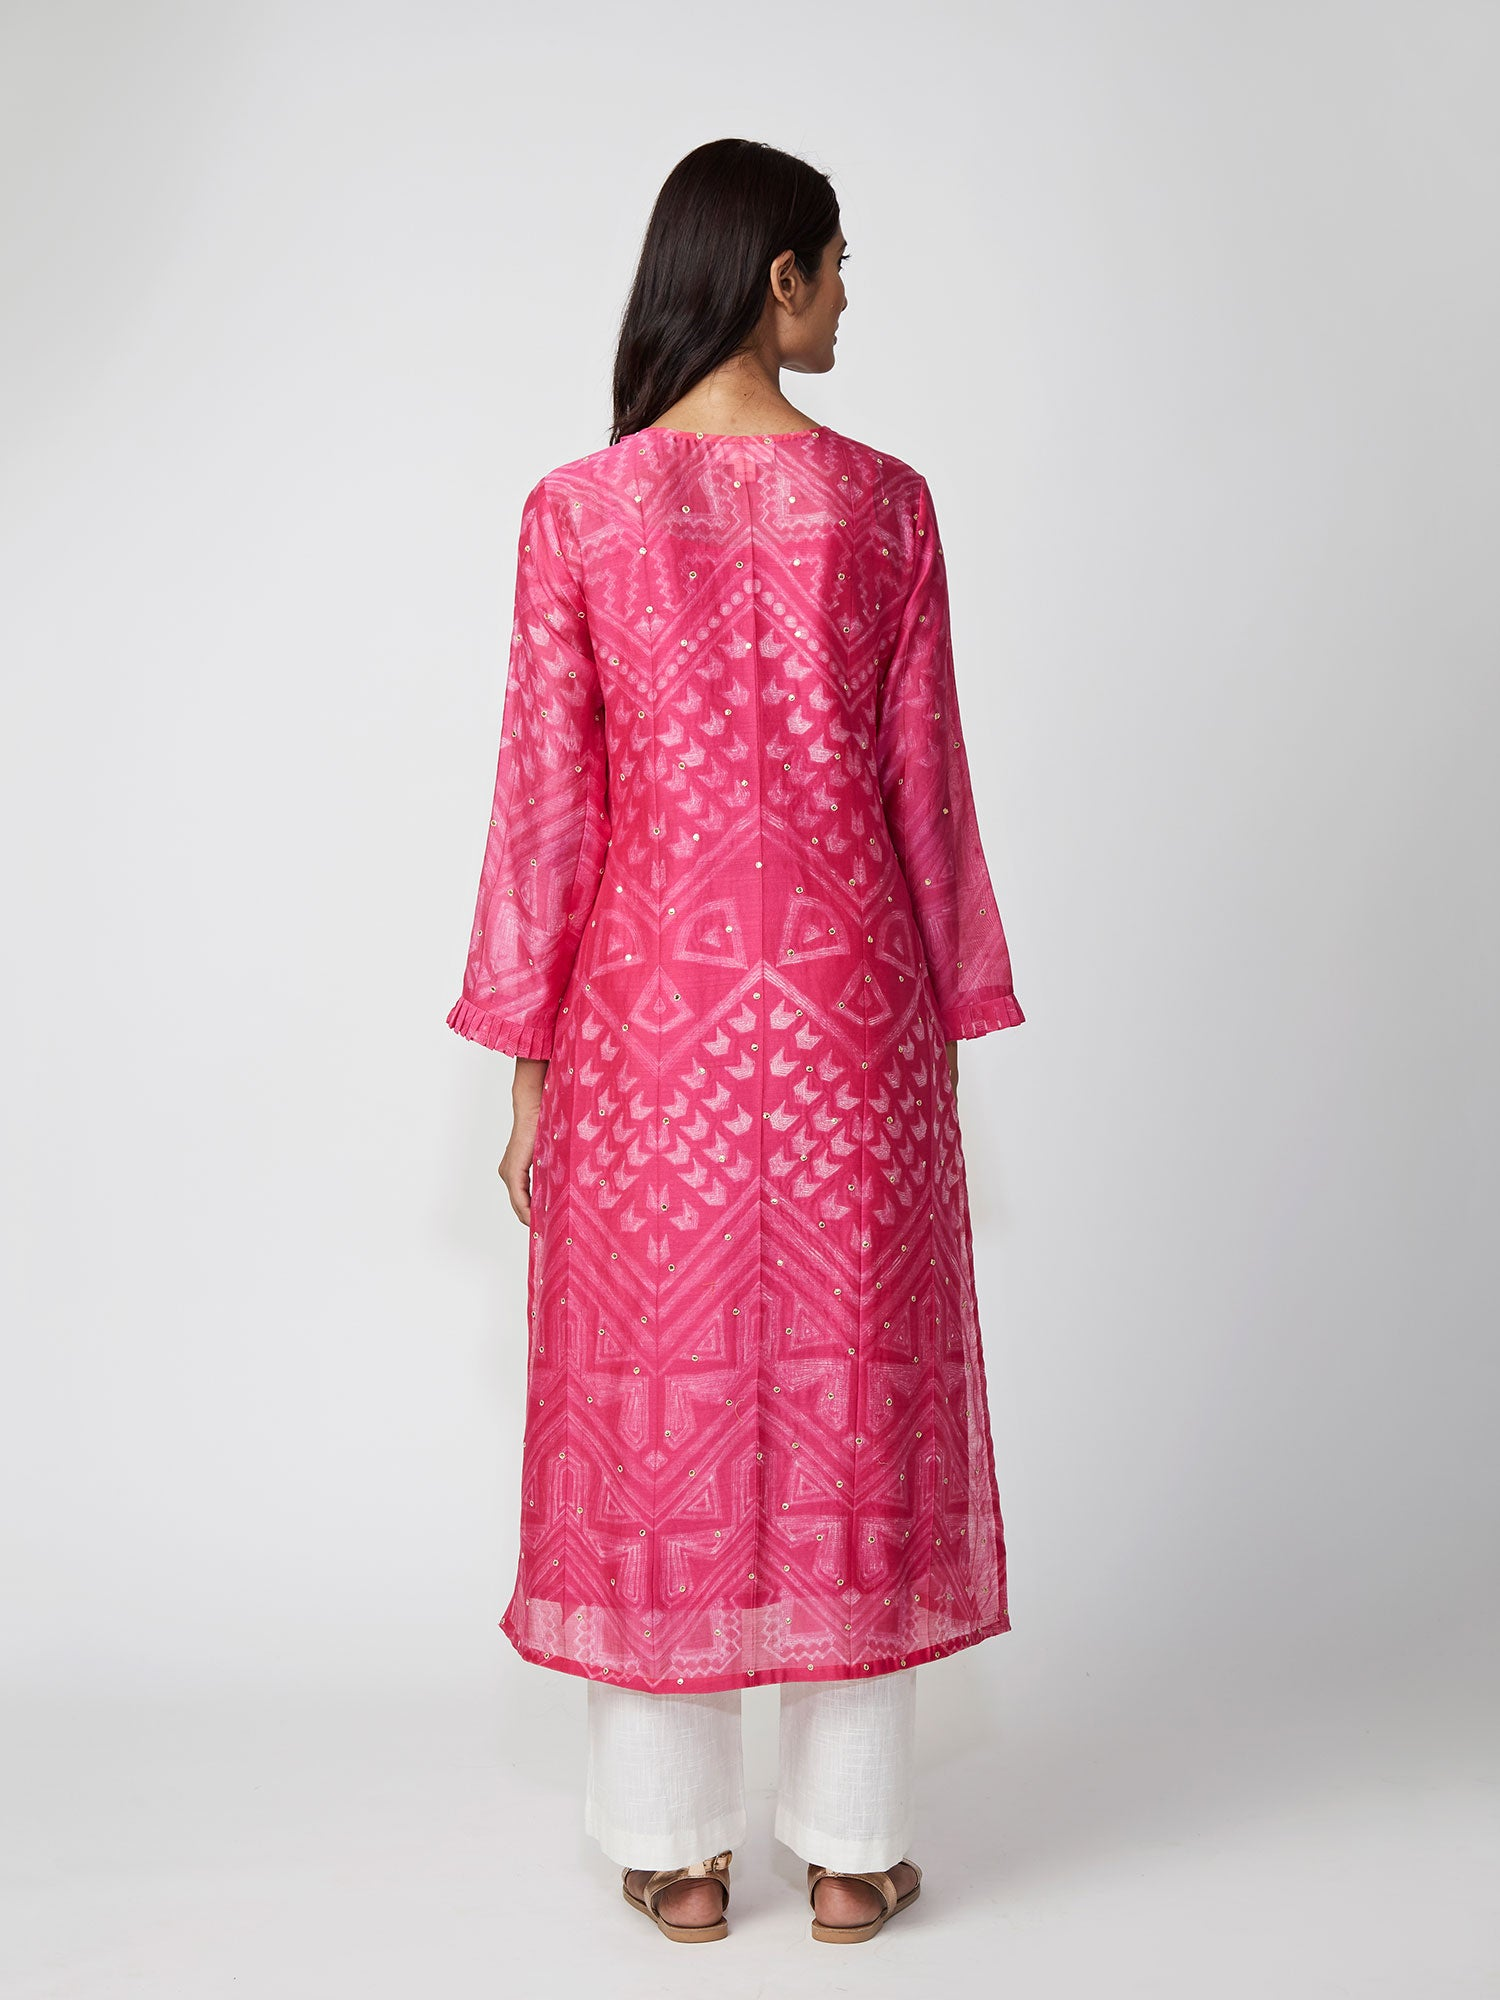 Rani Pink Tribal Print Chanderi Kurta Set